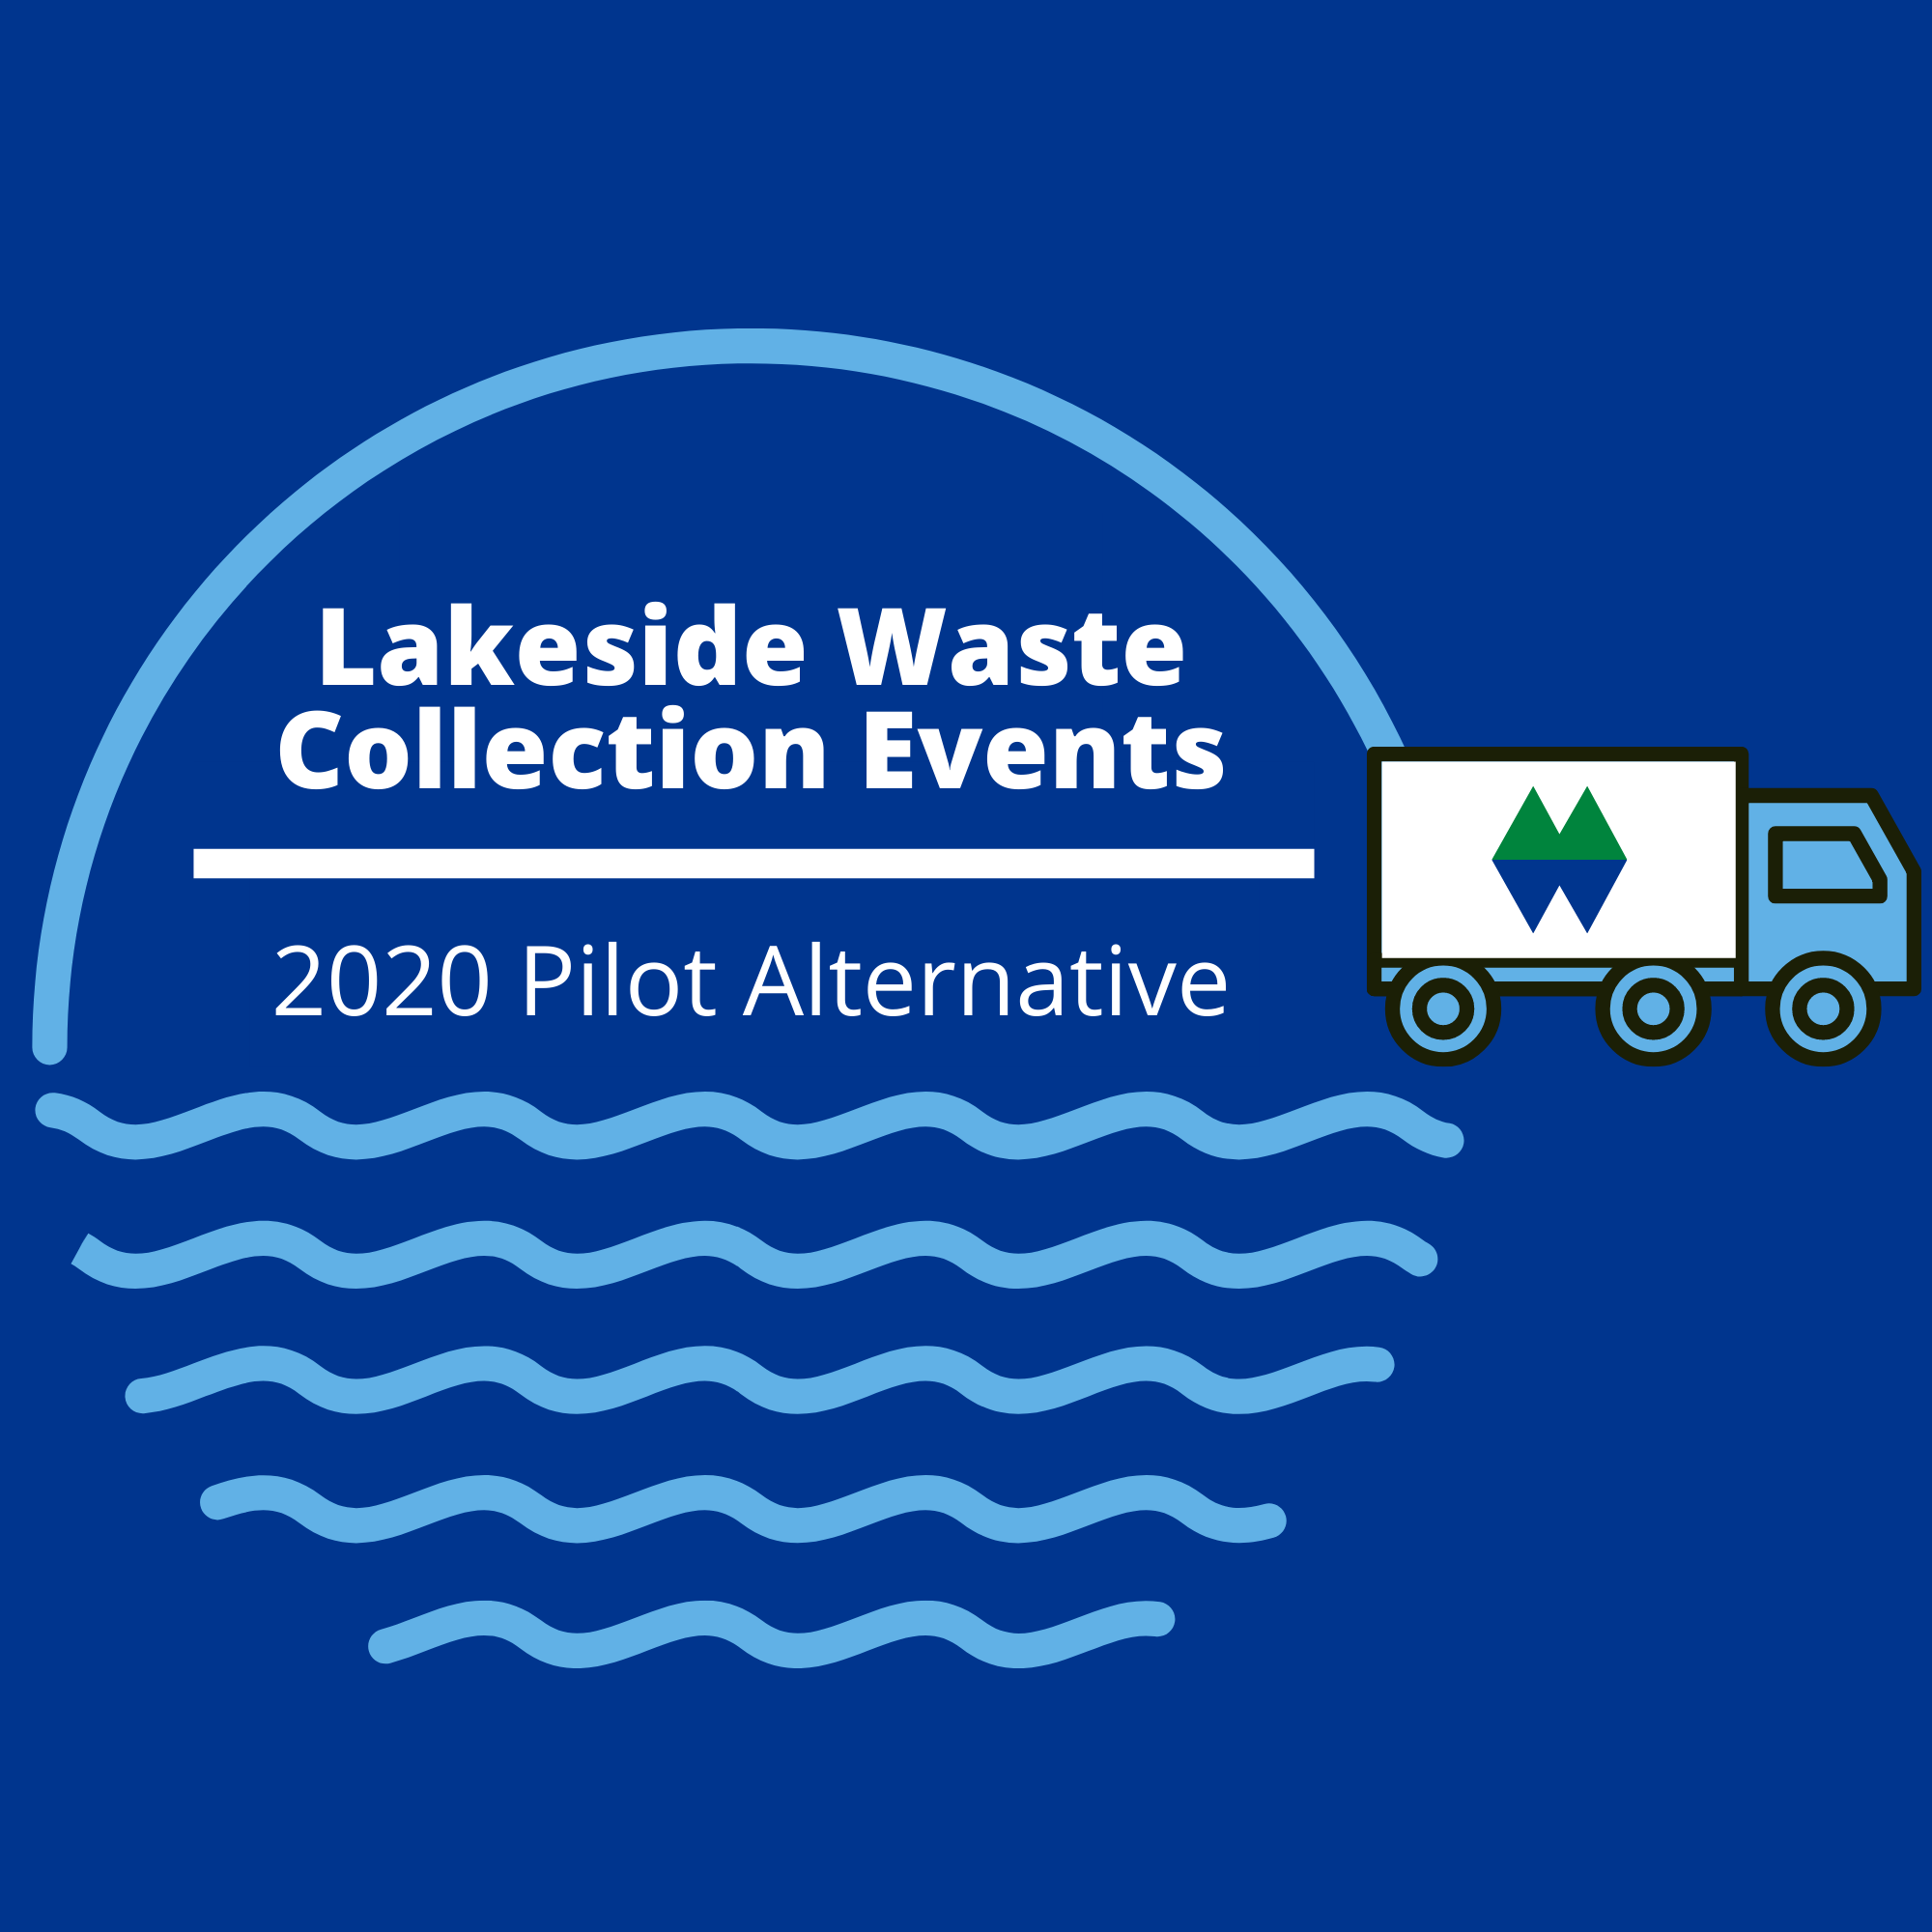 Lakeside Waste Collection Events